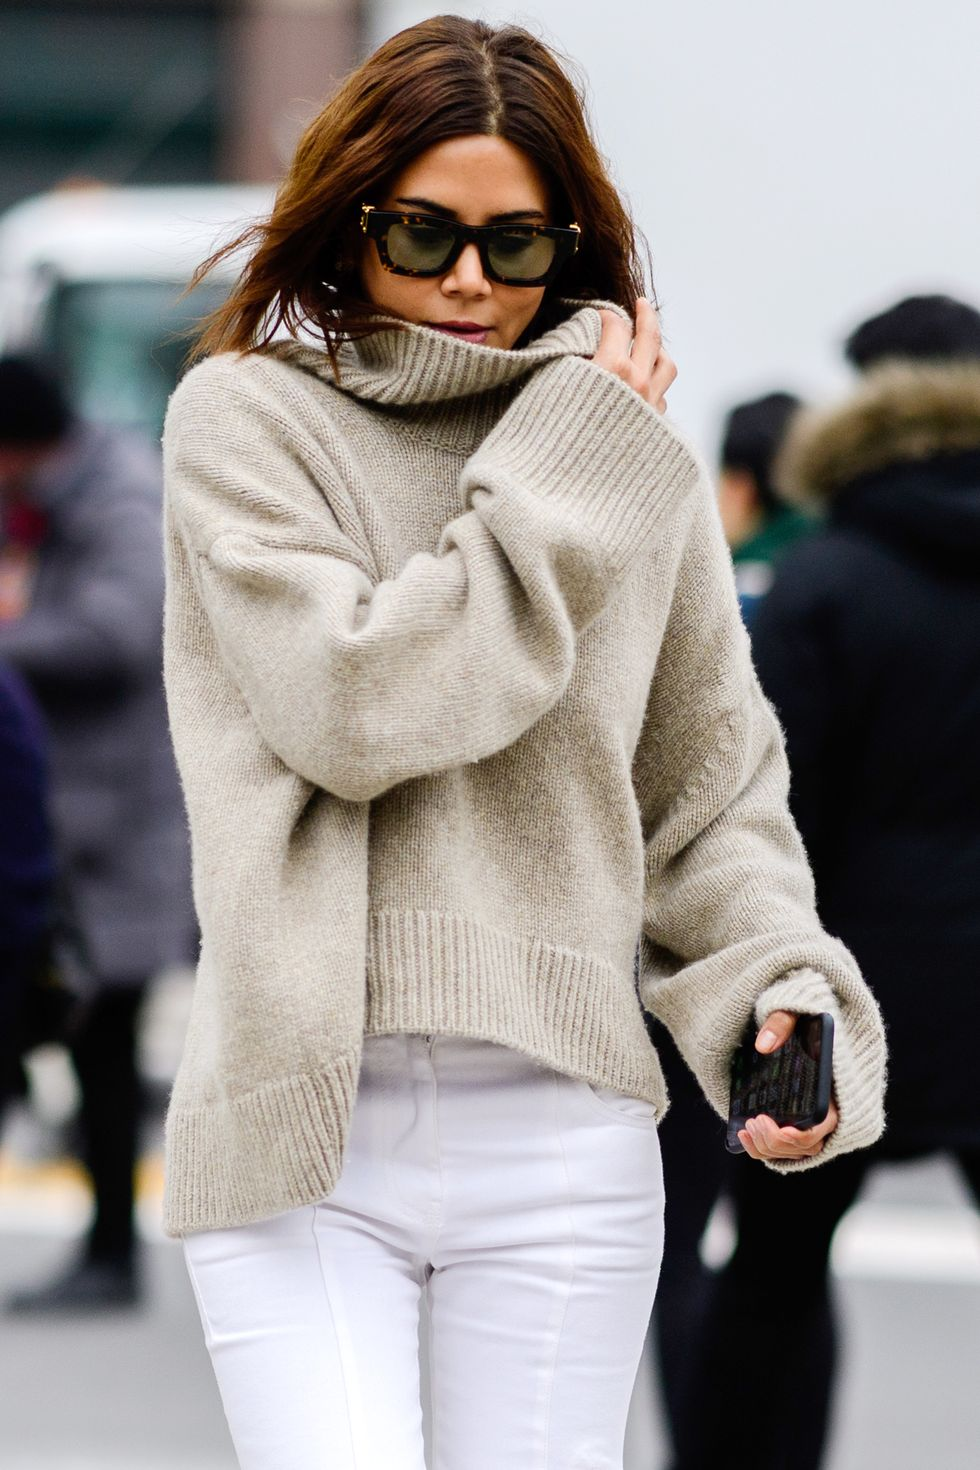 Easy Stylish Fall and Winter Outfit Idea: Neutral Turtleneck Sweater and White Jeans — Christine Centenera Street Style